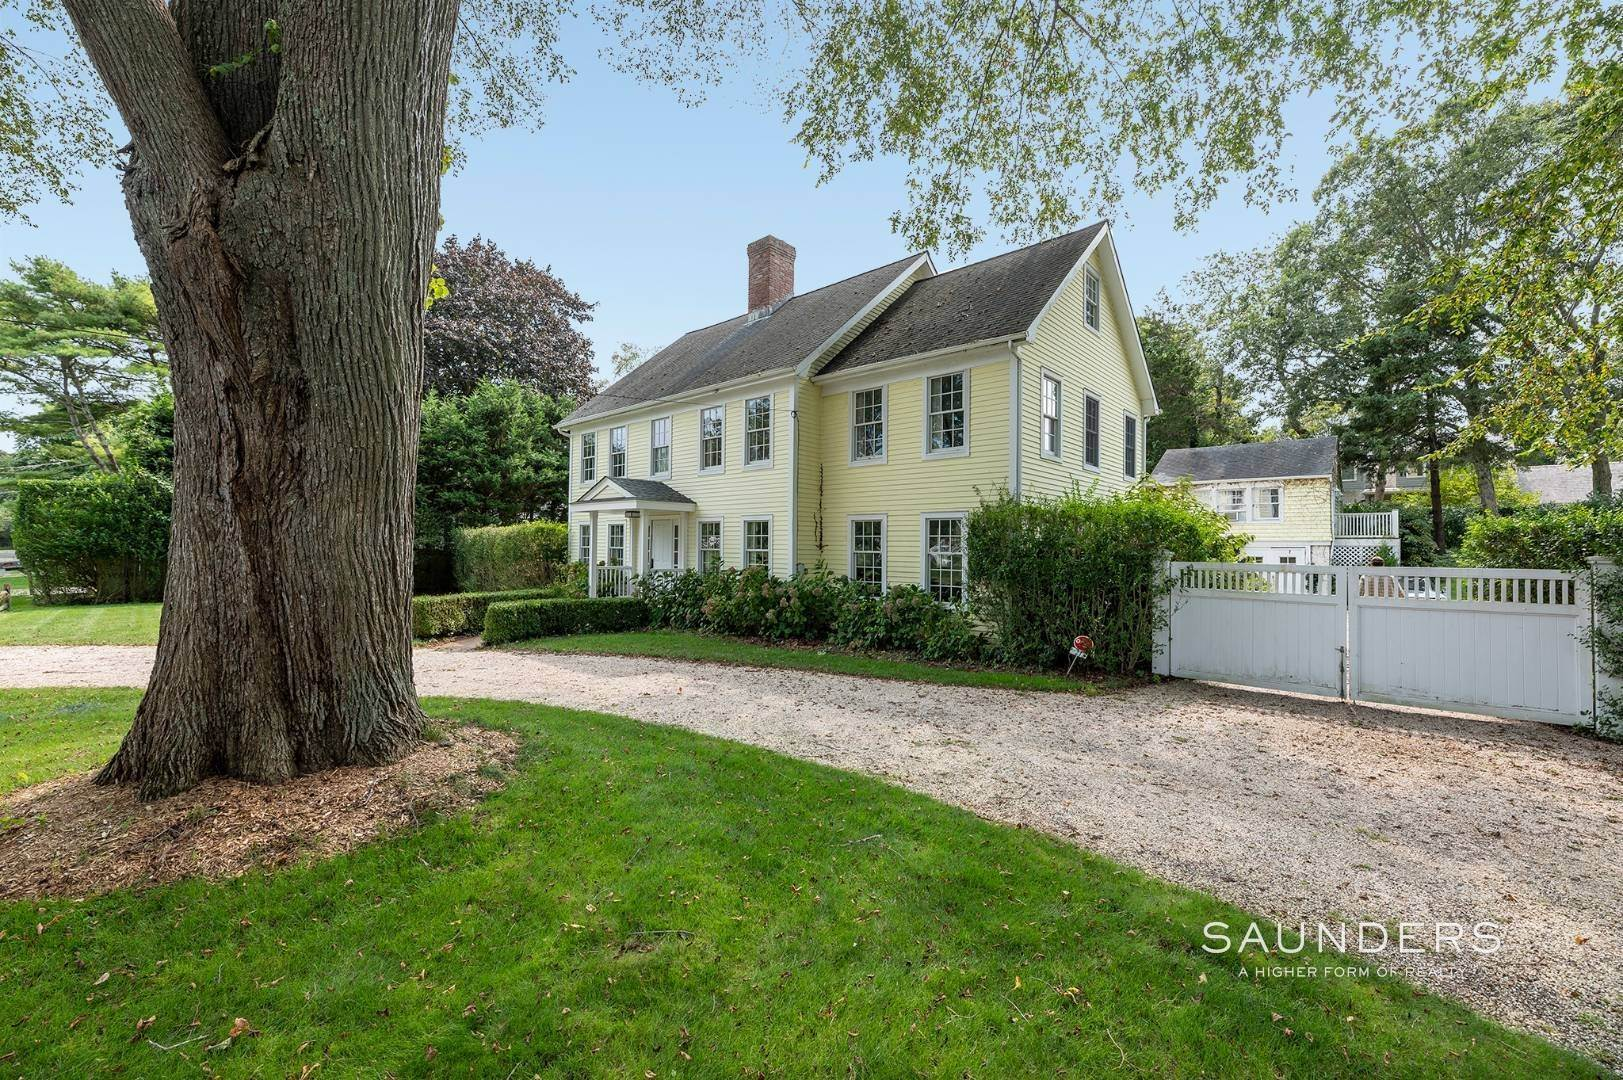 Single Family Homes for Sale at East Hampton Village Traditional South Of The Highway 21 Buckskill Road, East Hampton, East Hampton Town, NY 11937